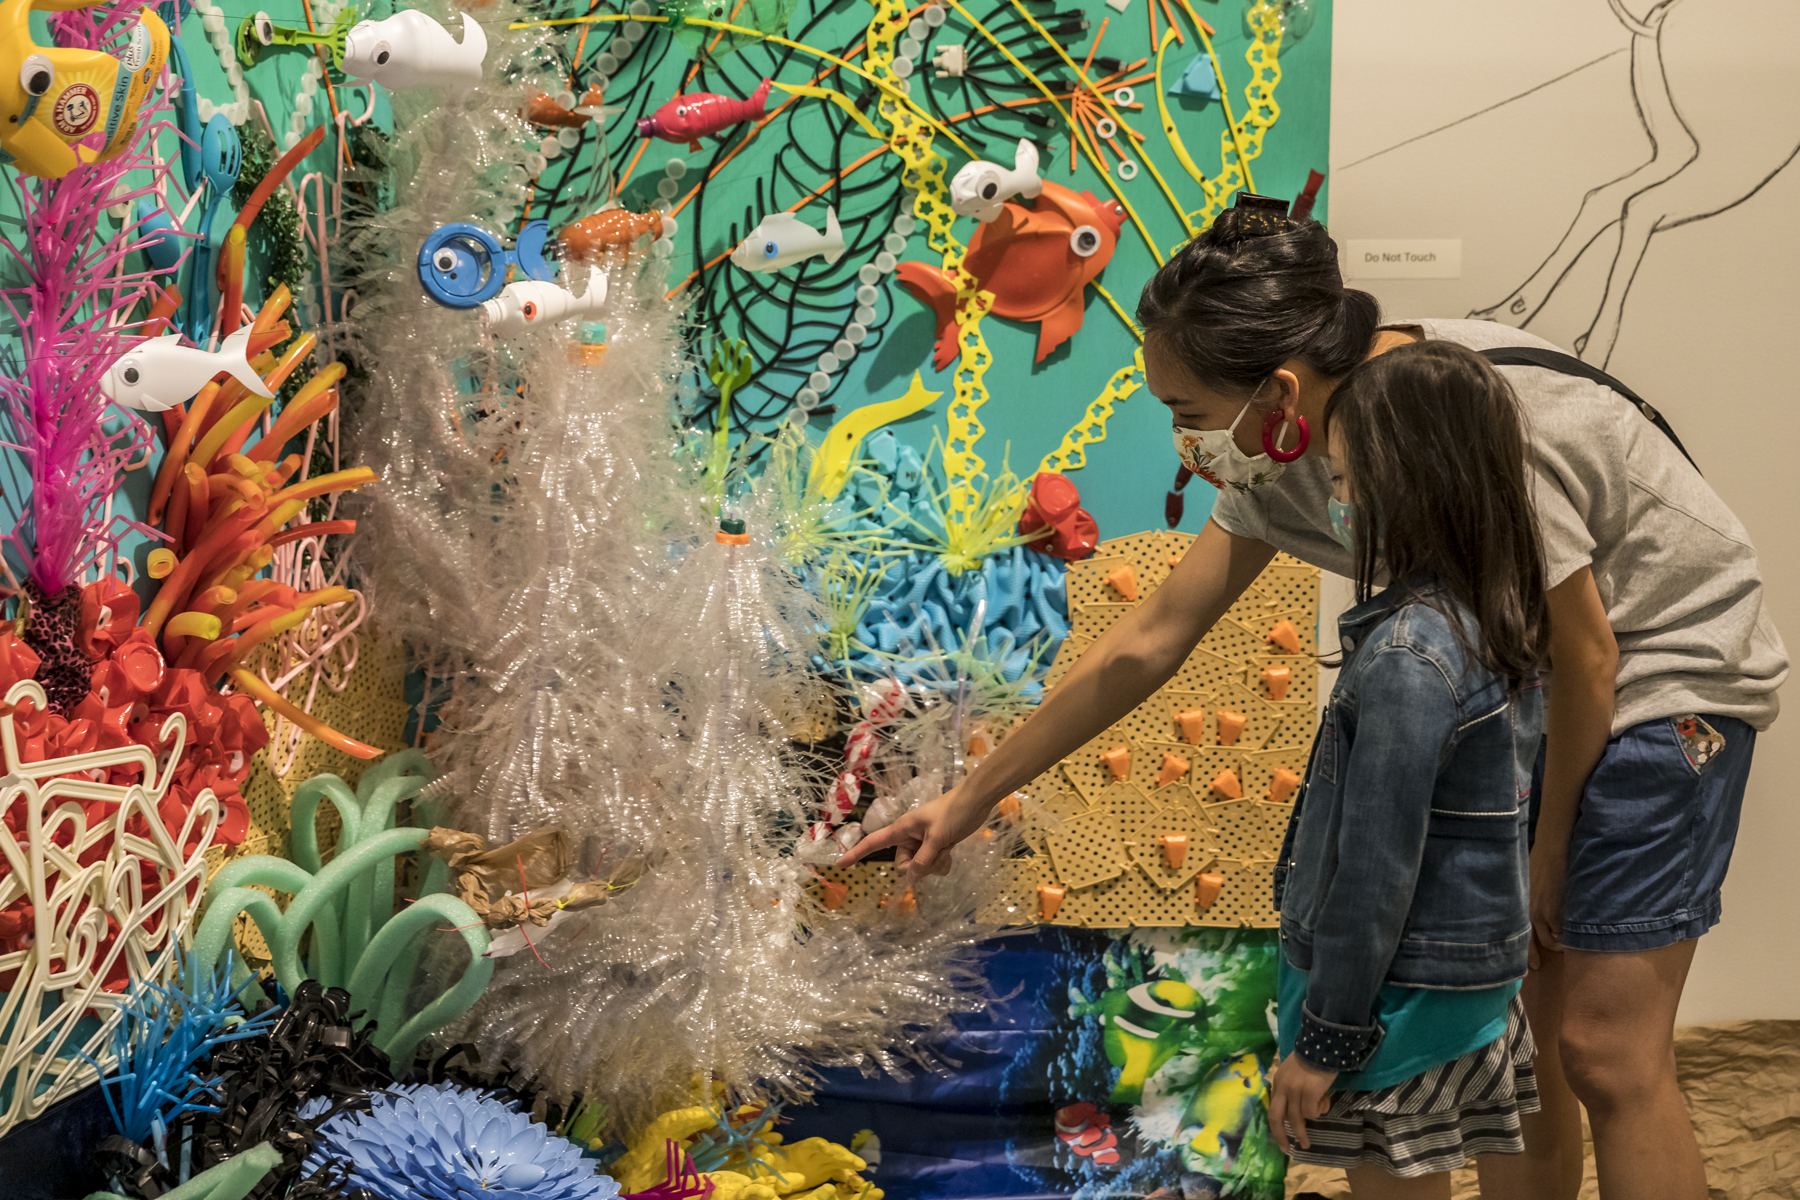 A child and her mother are looking at Federico Uribe's coral reef installation. The mother is pointing to something. The child is looking at where she is pointing.